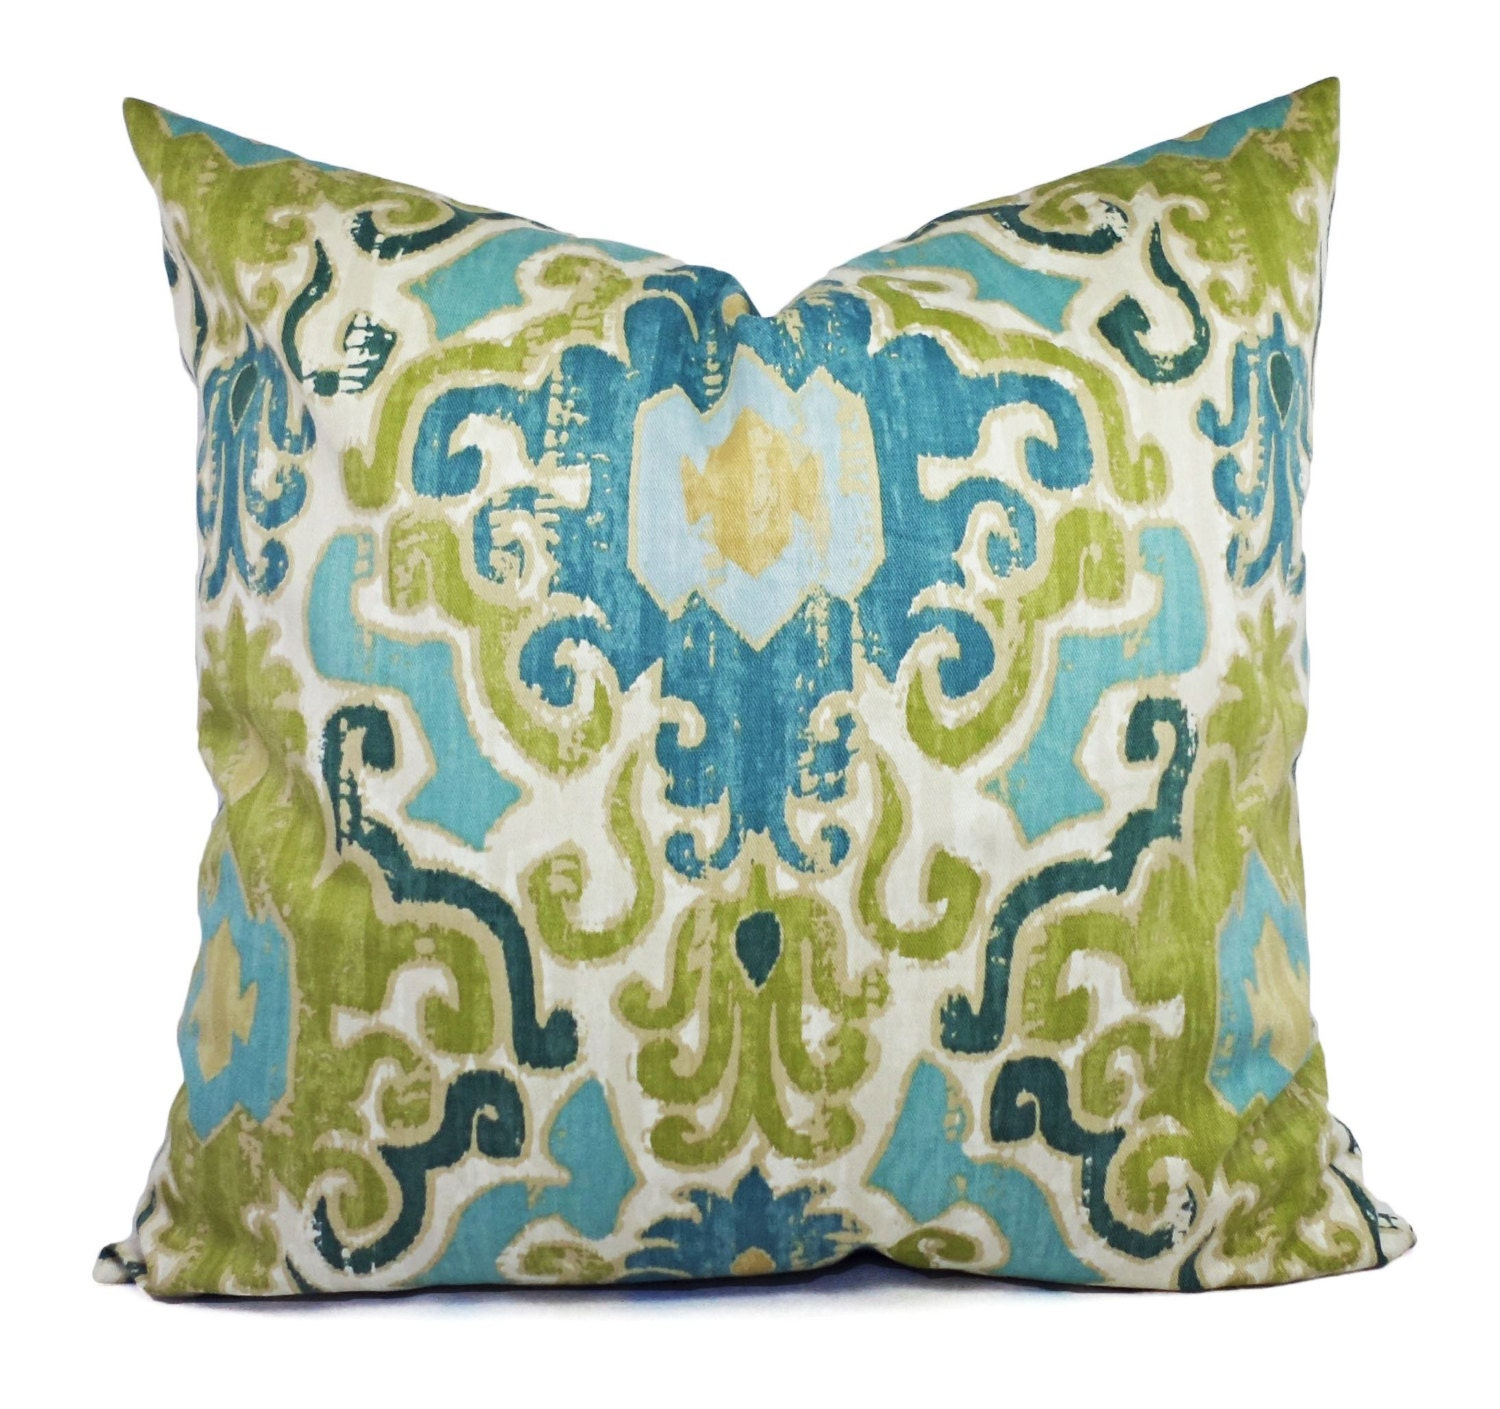 Green Ikat Throw Pillow : Two Pillow Covers Blue Green Ikat Pillows Blue Green